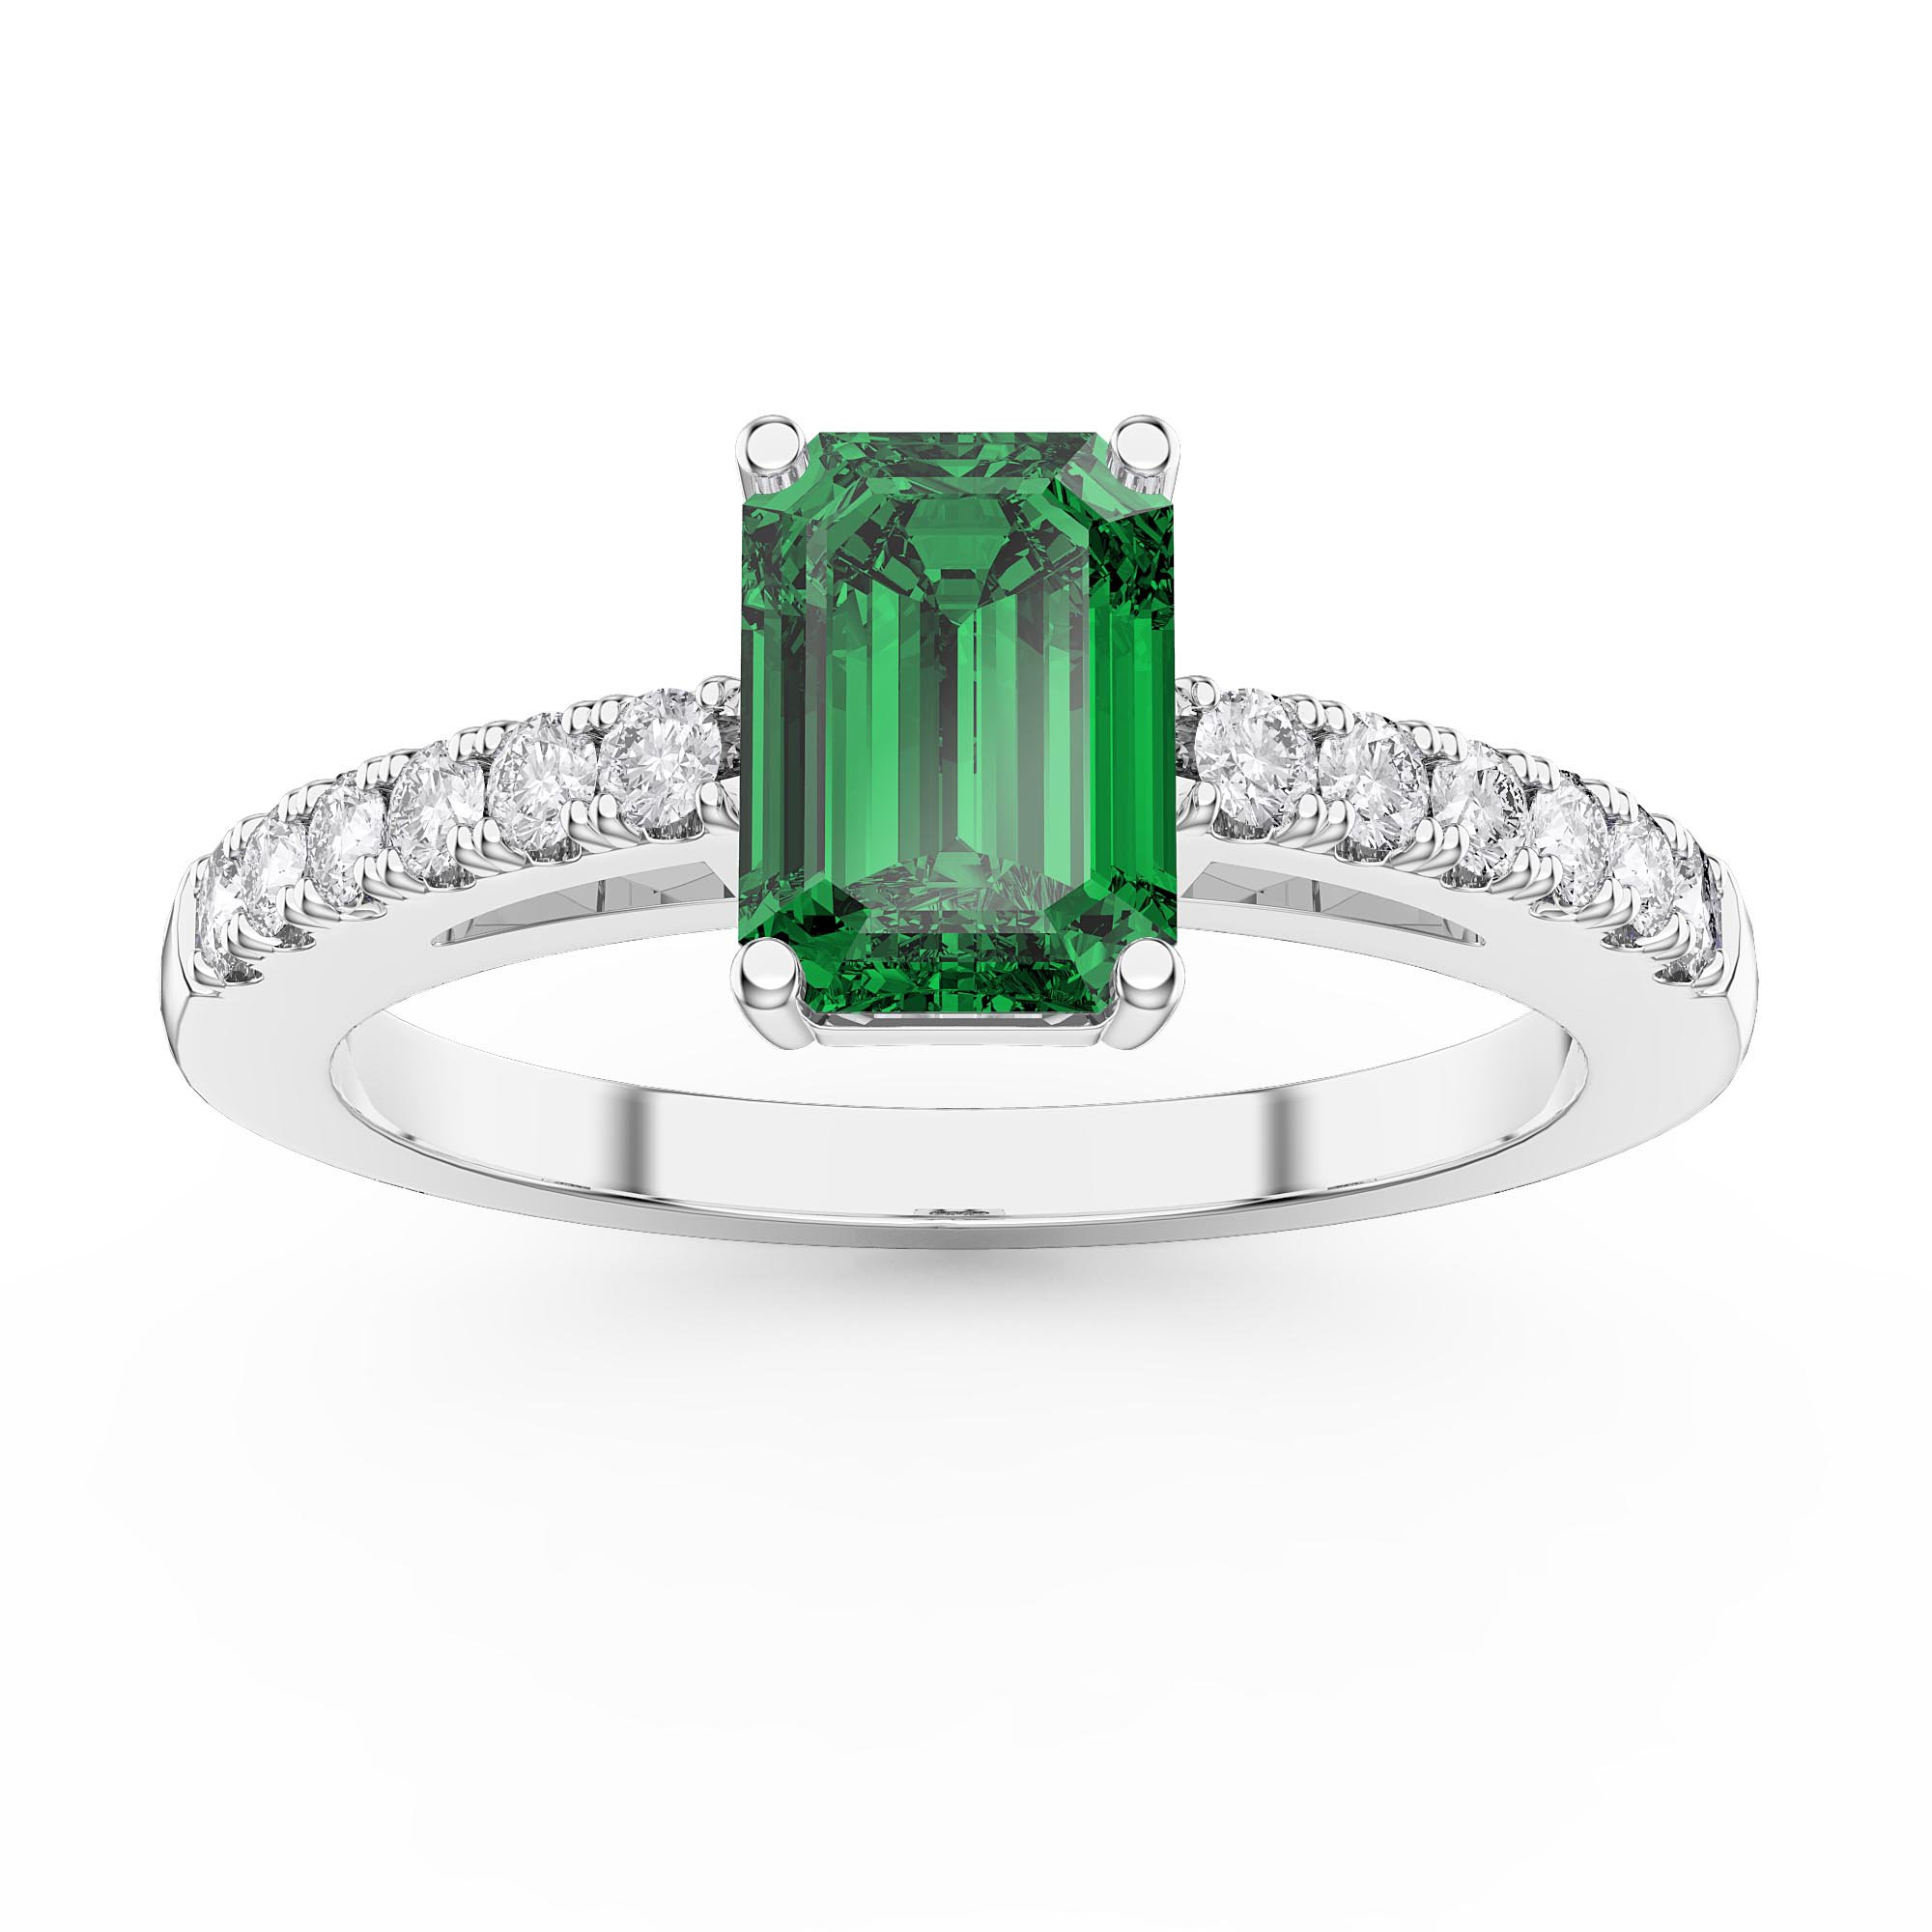 8ab7cd0ab809d6 ... Cut Emerald Diamond Pave 18ct White Gold Engagement Ring. Tap to expand